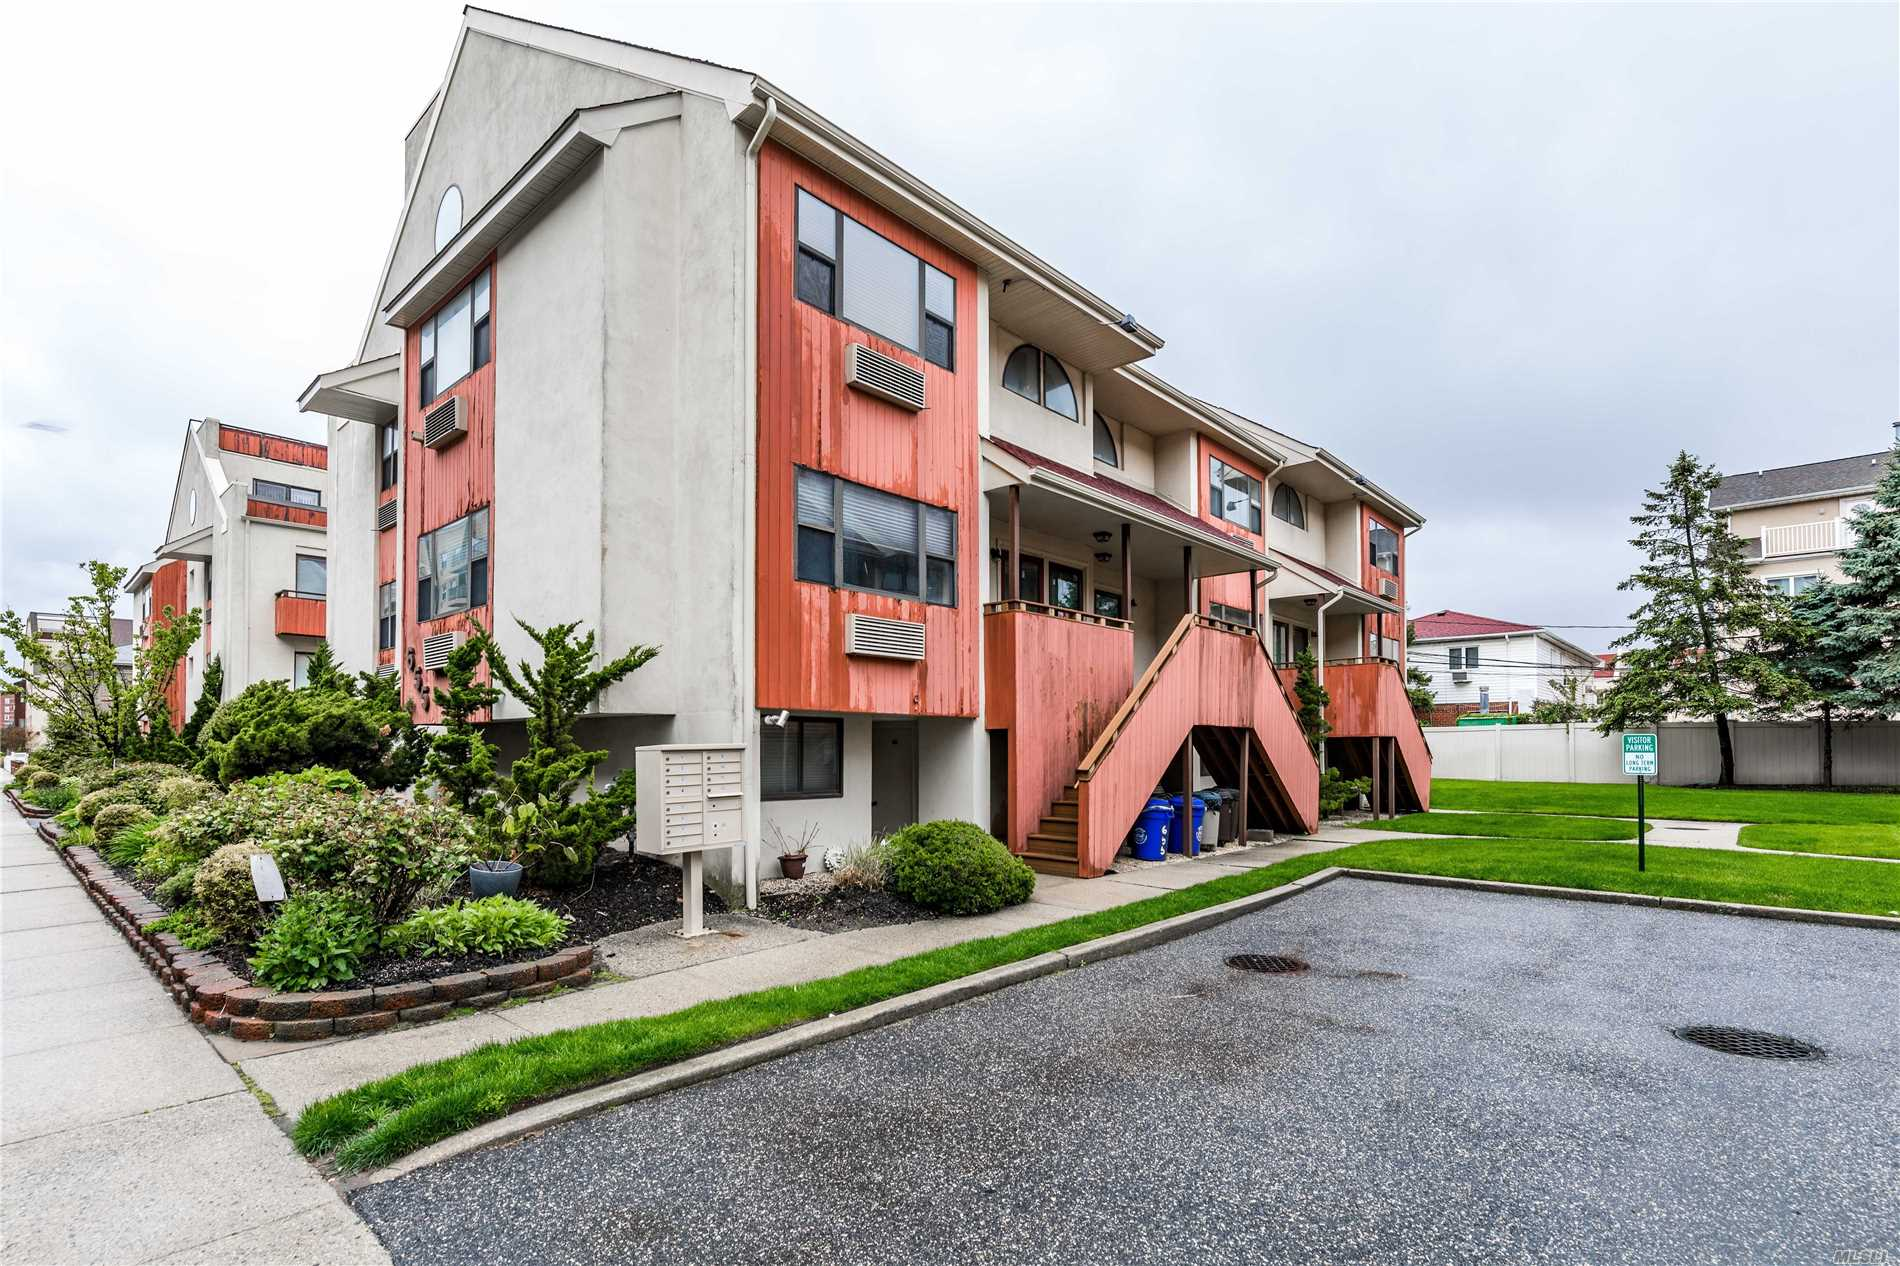 Property for sale at 655 Shore Road # 4A, Long Beach NY 11561, Long Beach,  New York 11561